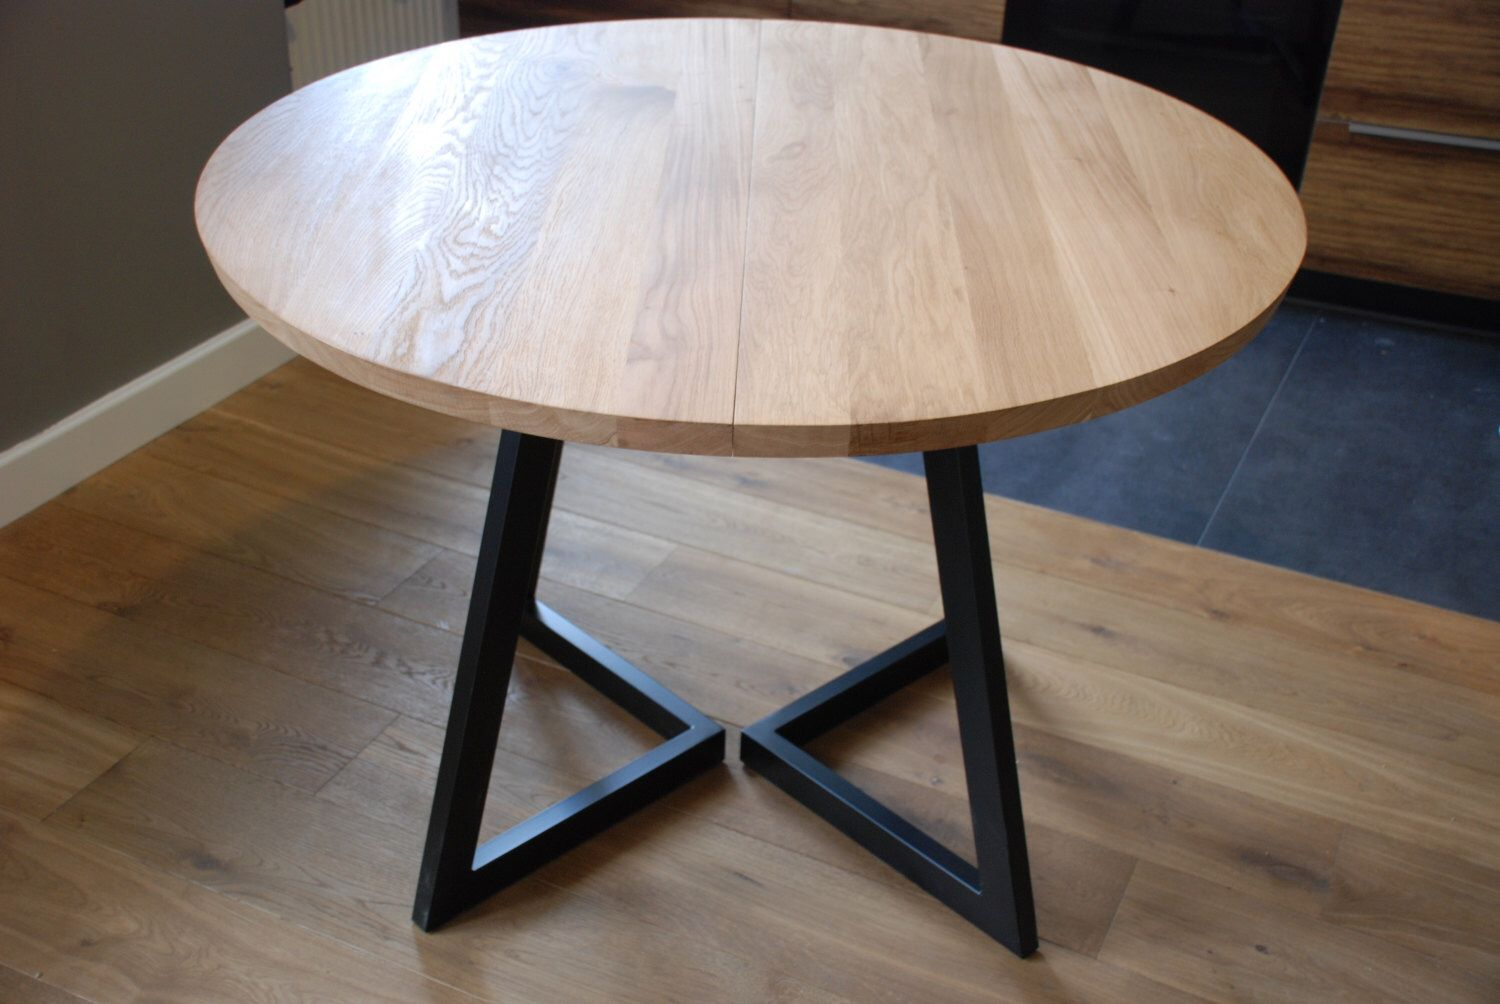 Extendable round table modern design steel and timber by for Table ronde design extensible